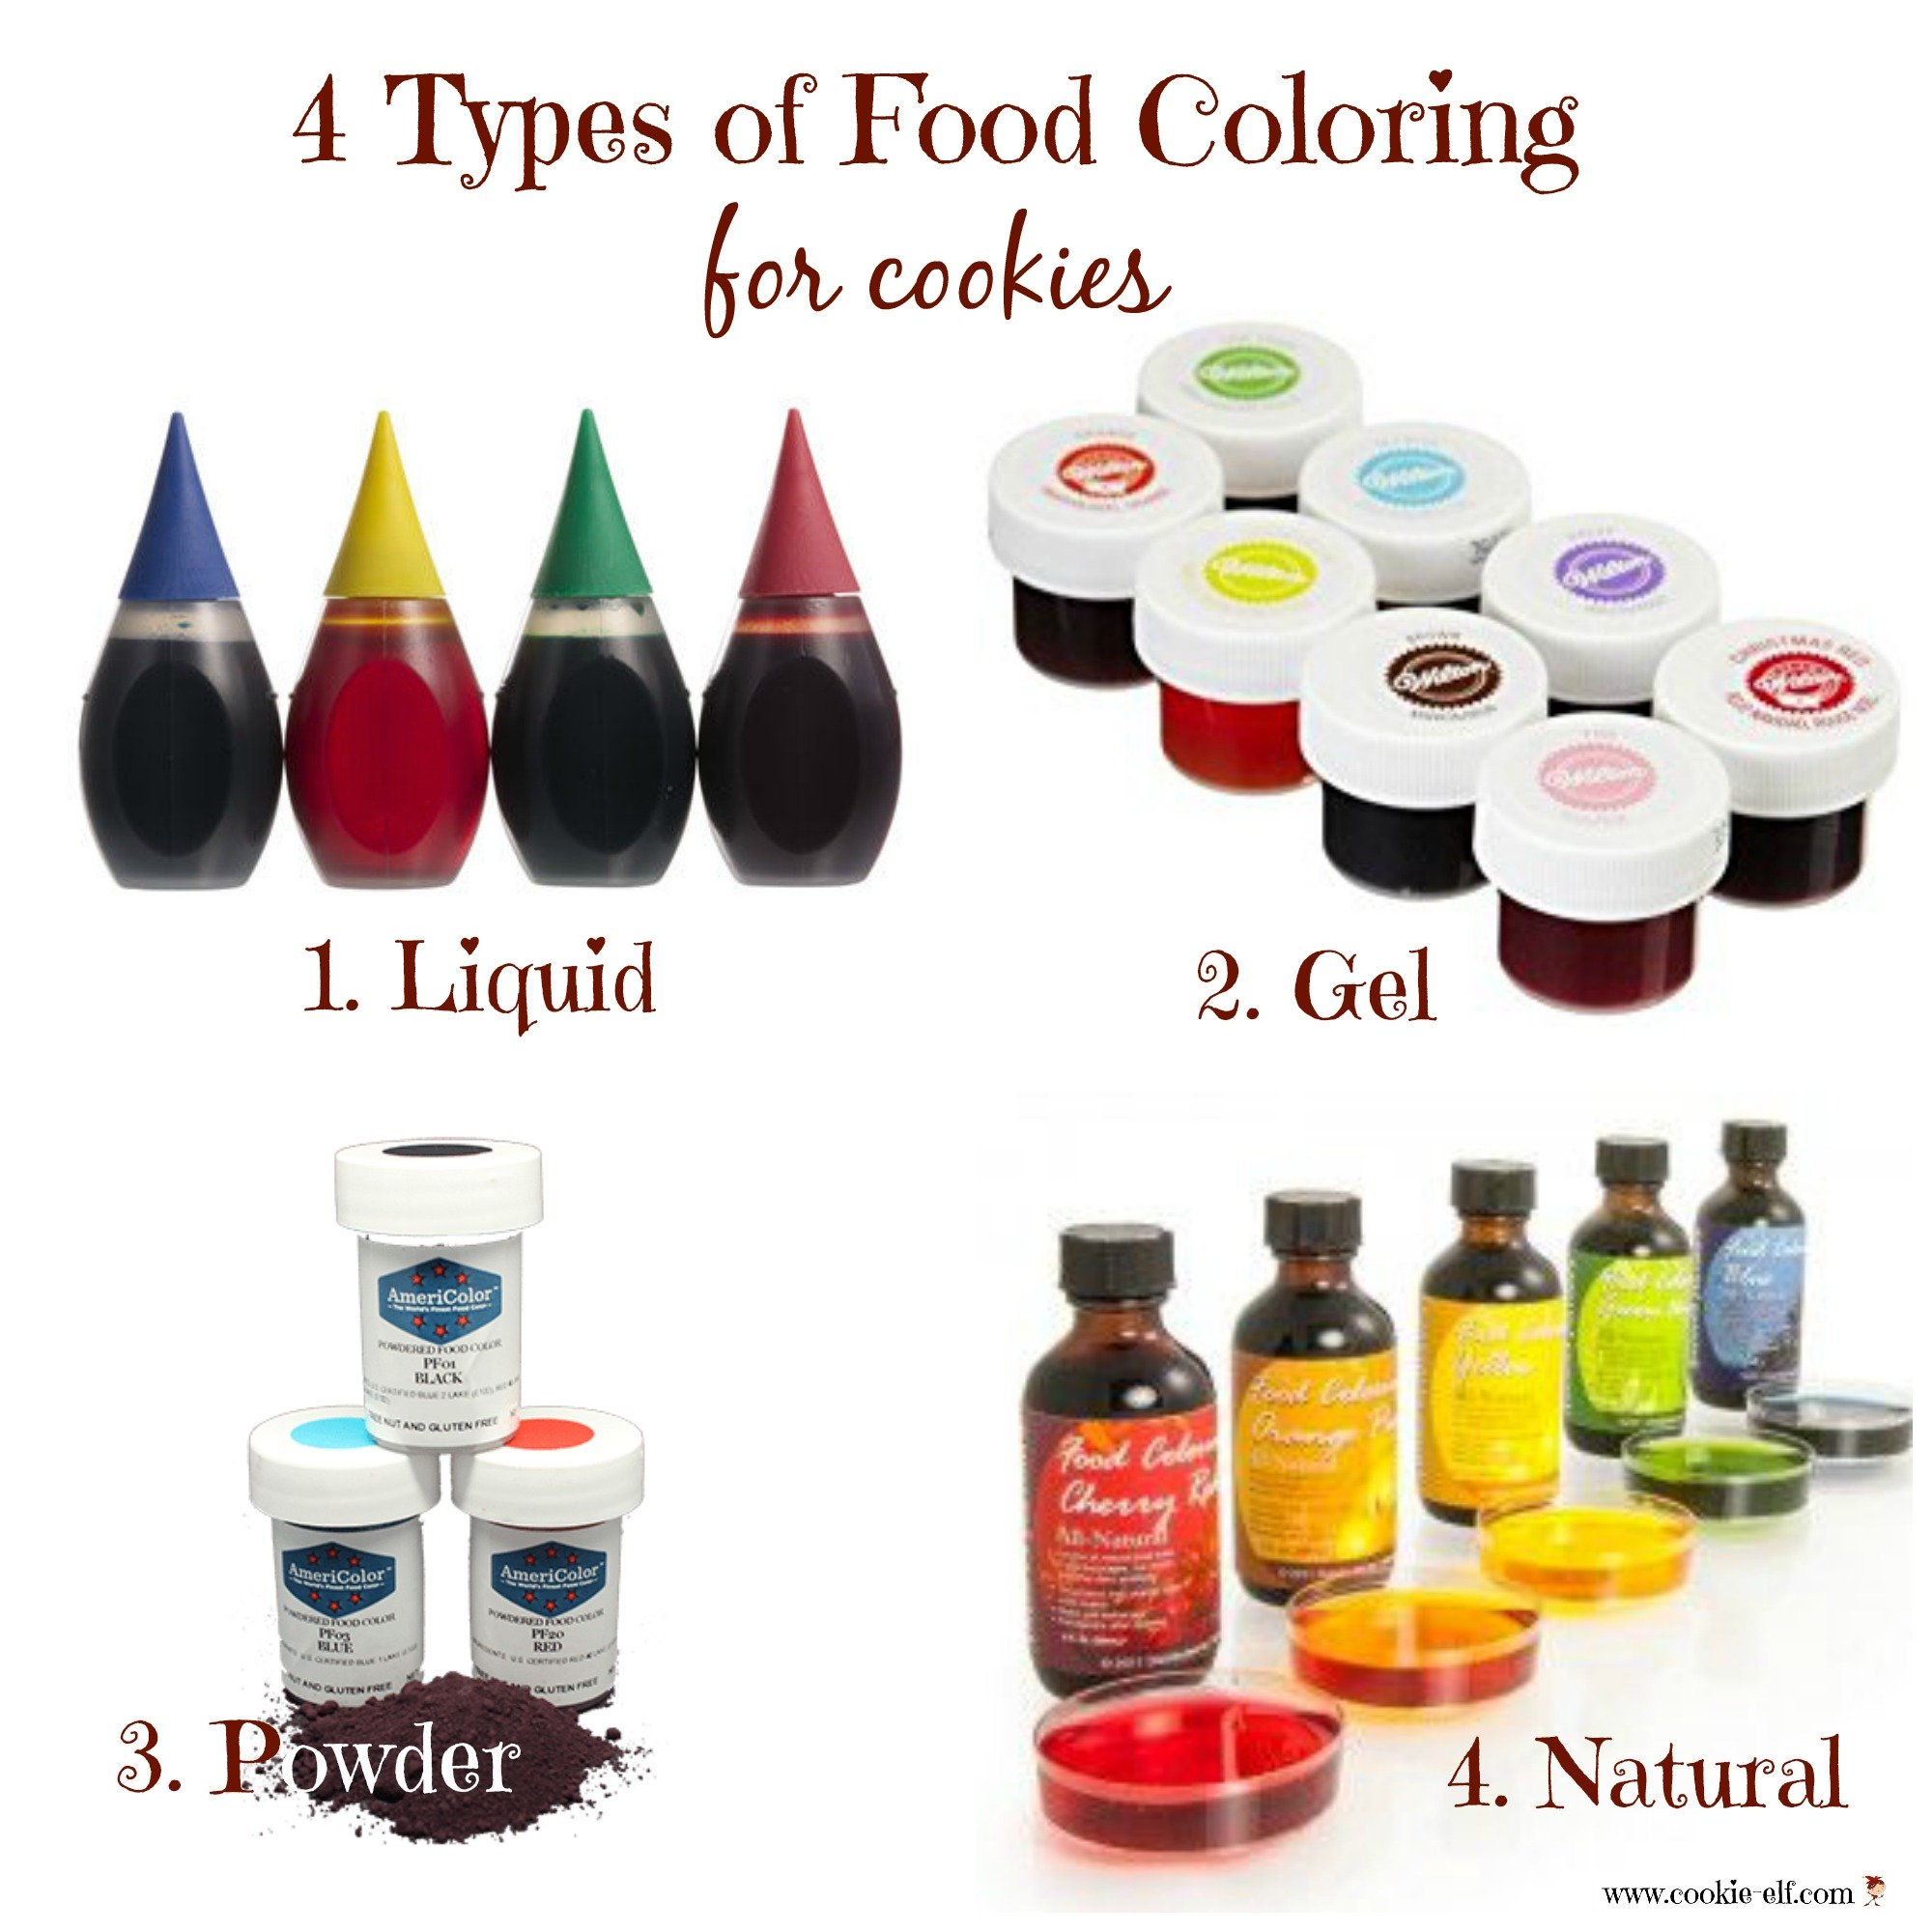 4 types of food coloring for cookies with The Cookie Elf